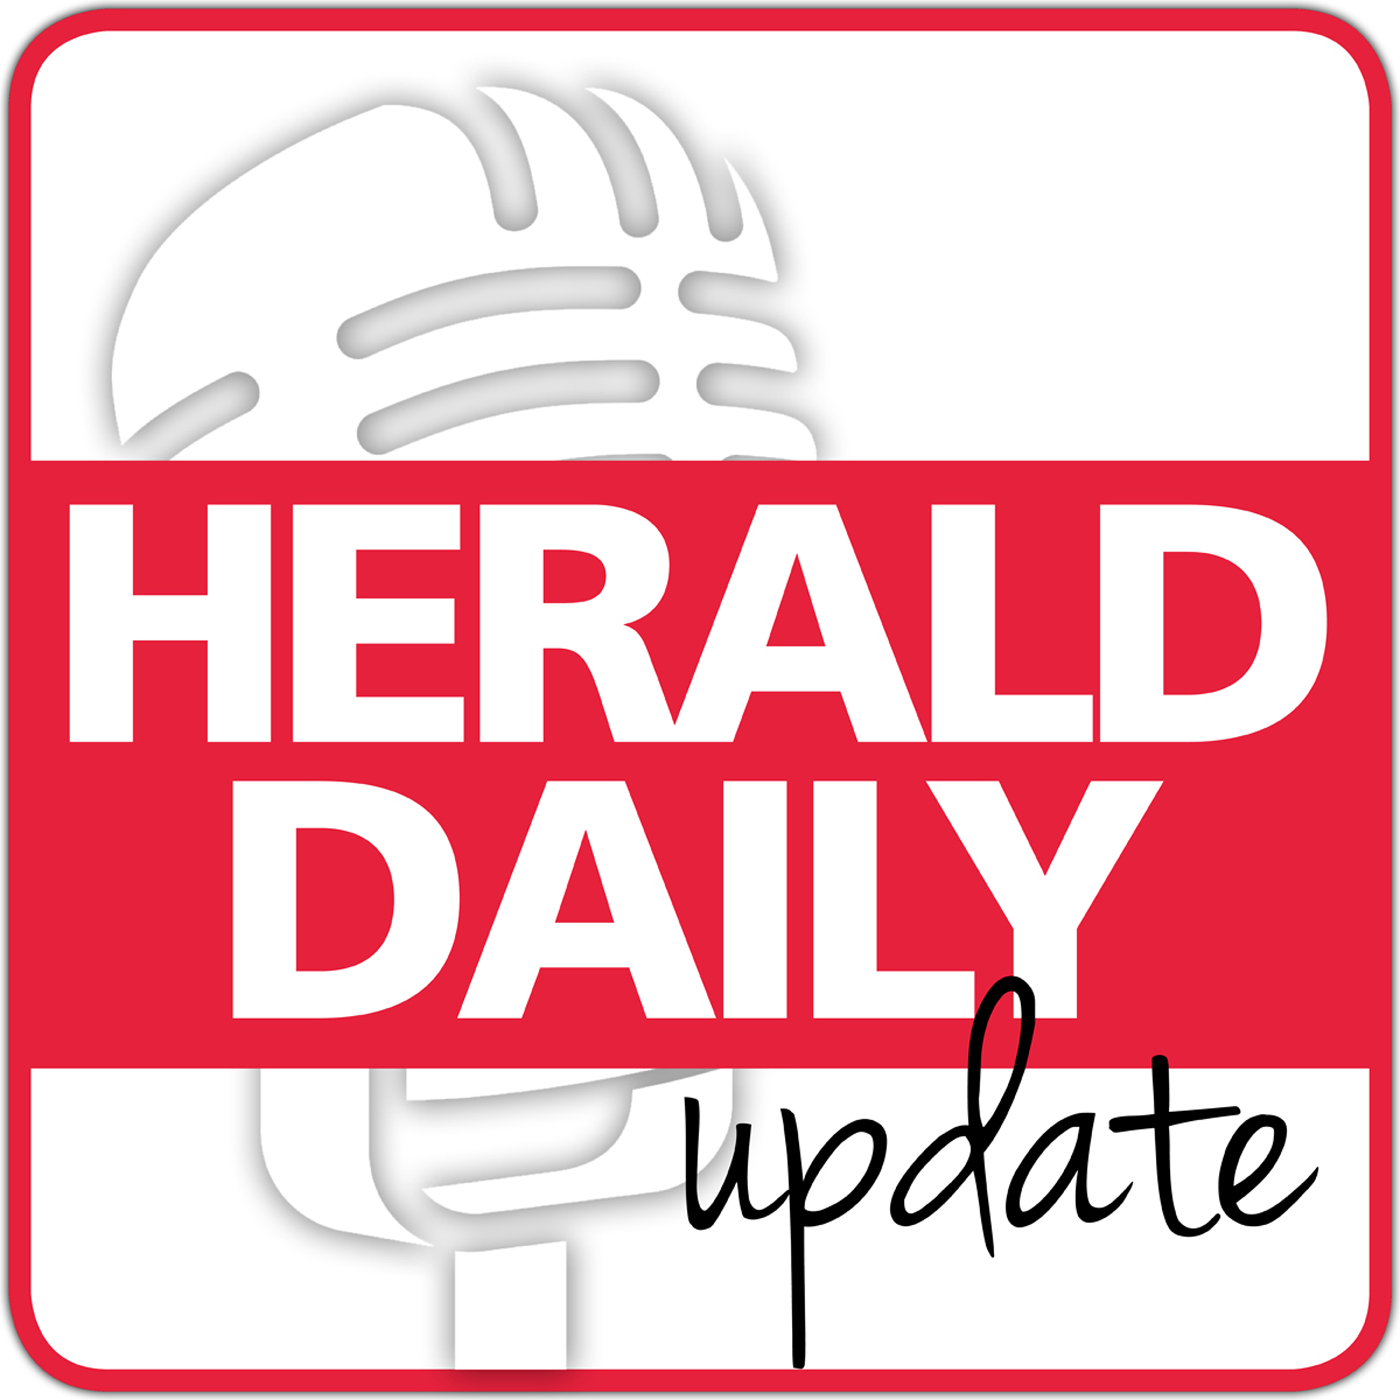 Artwork for Herald Daily Update - Tuesday, July 22, 2019